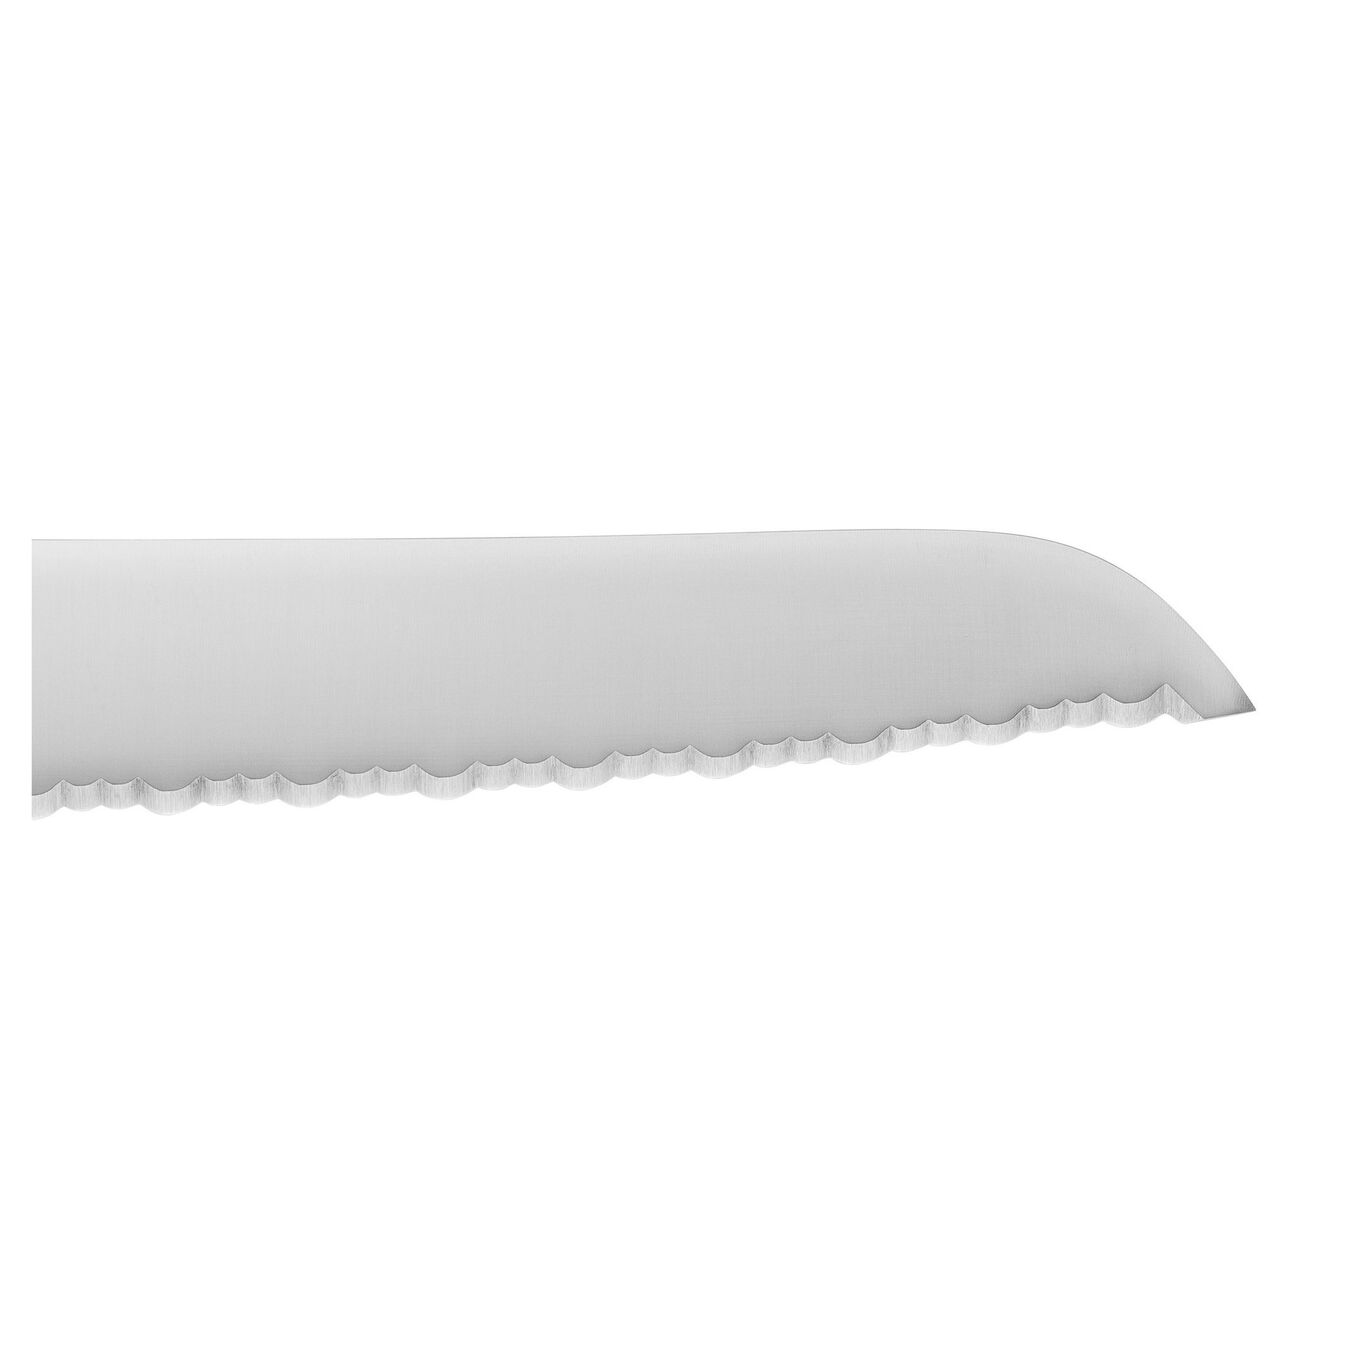 10 inch Bread knife,,large 2